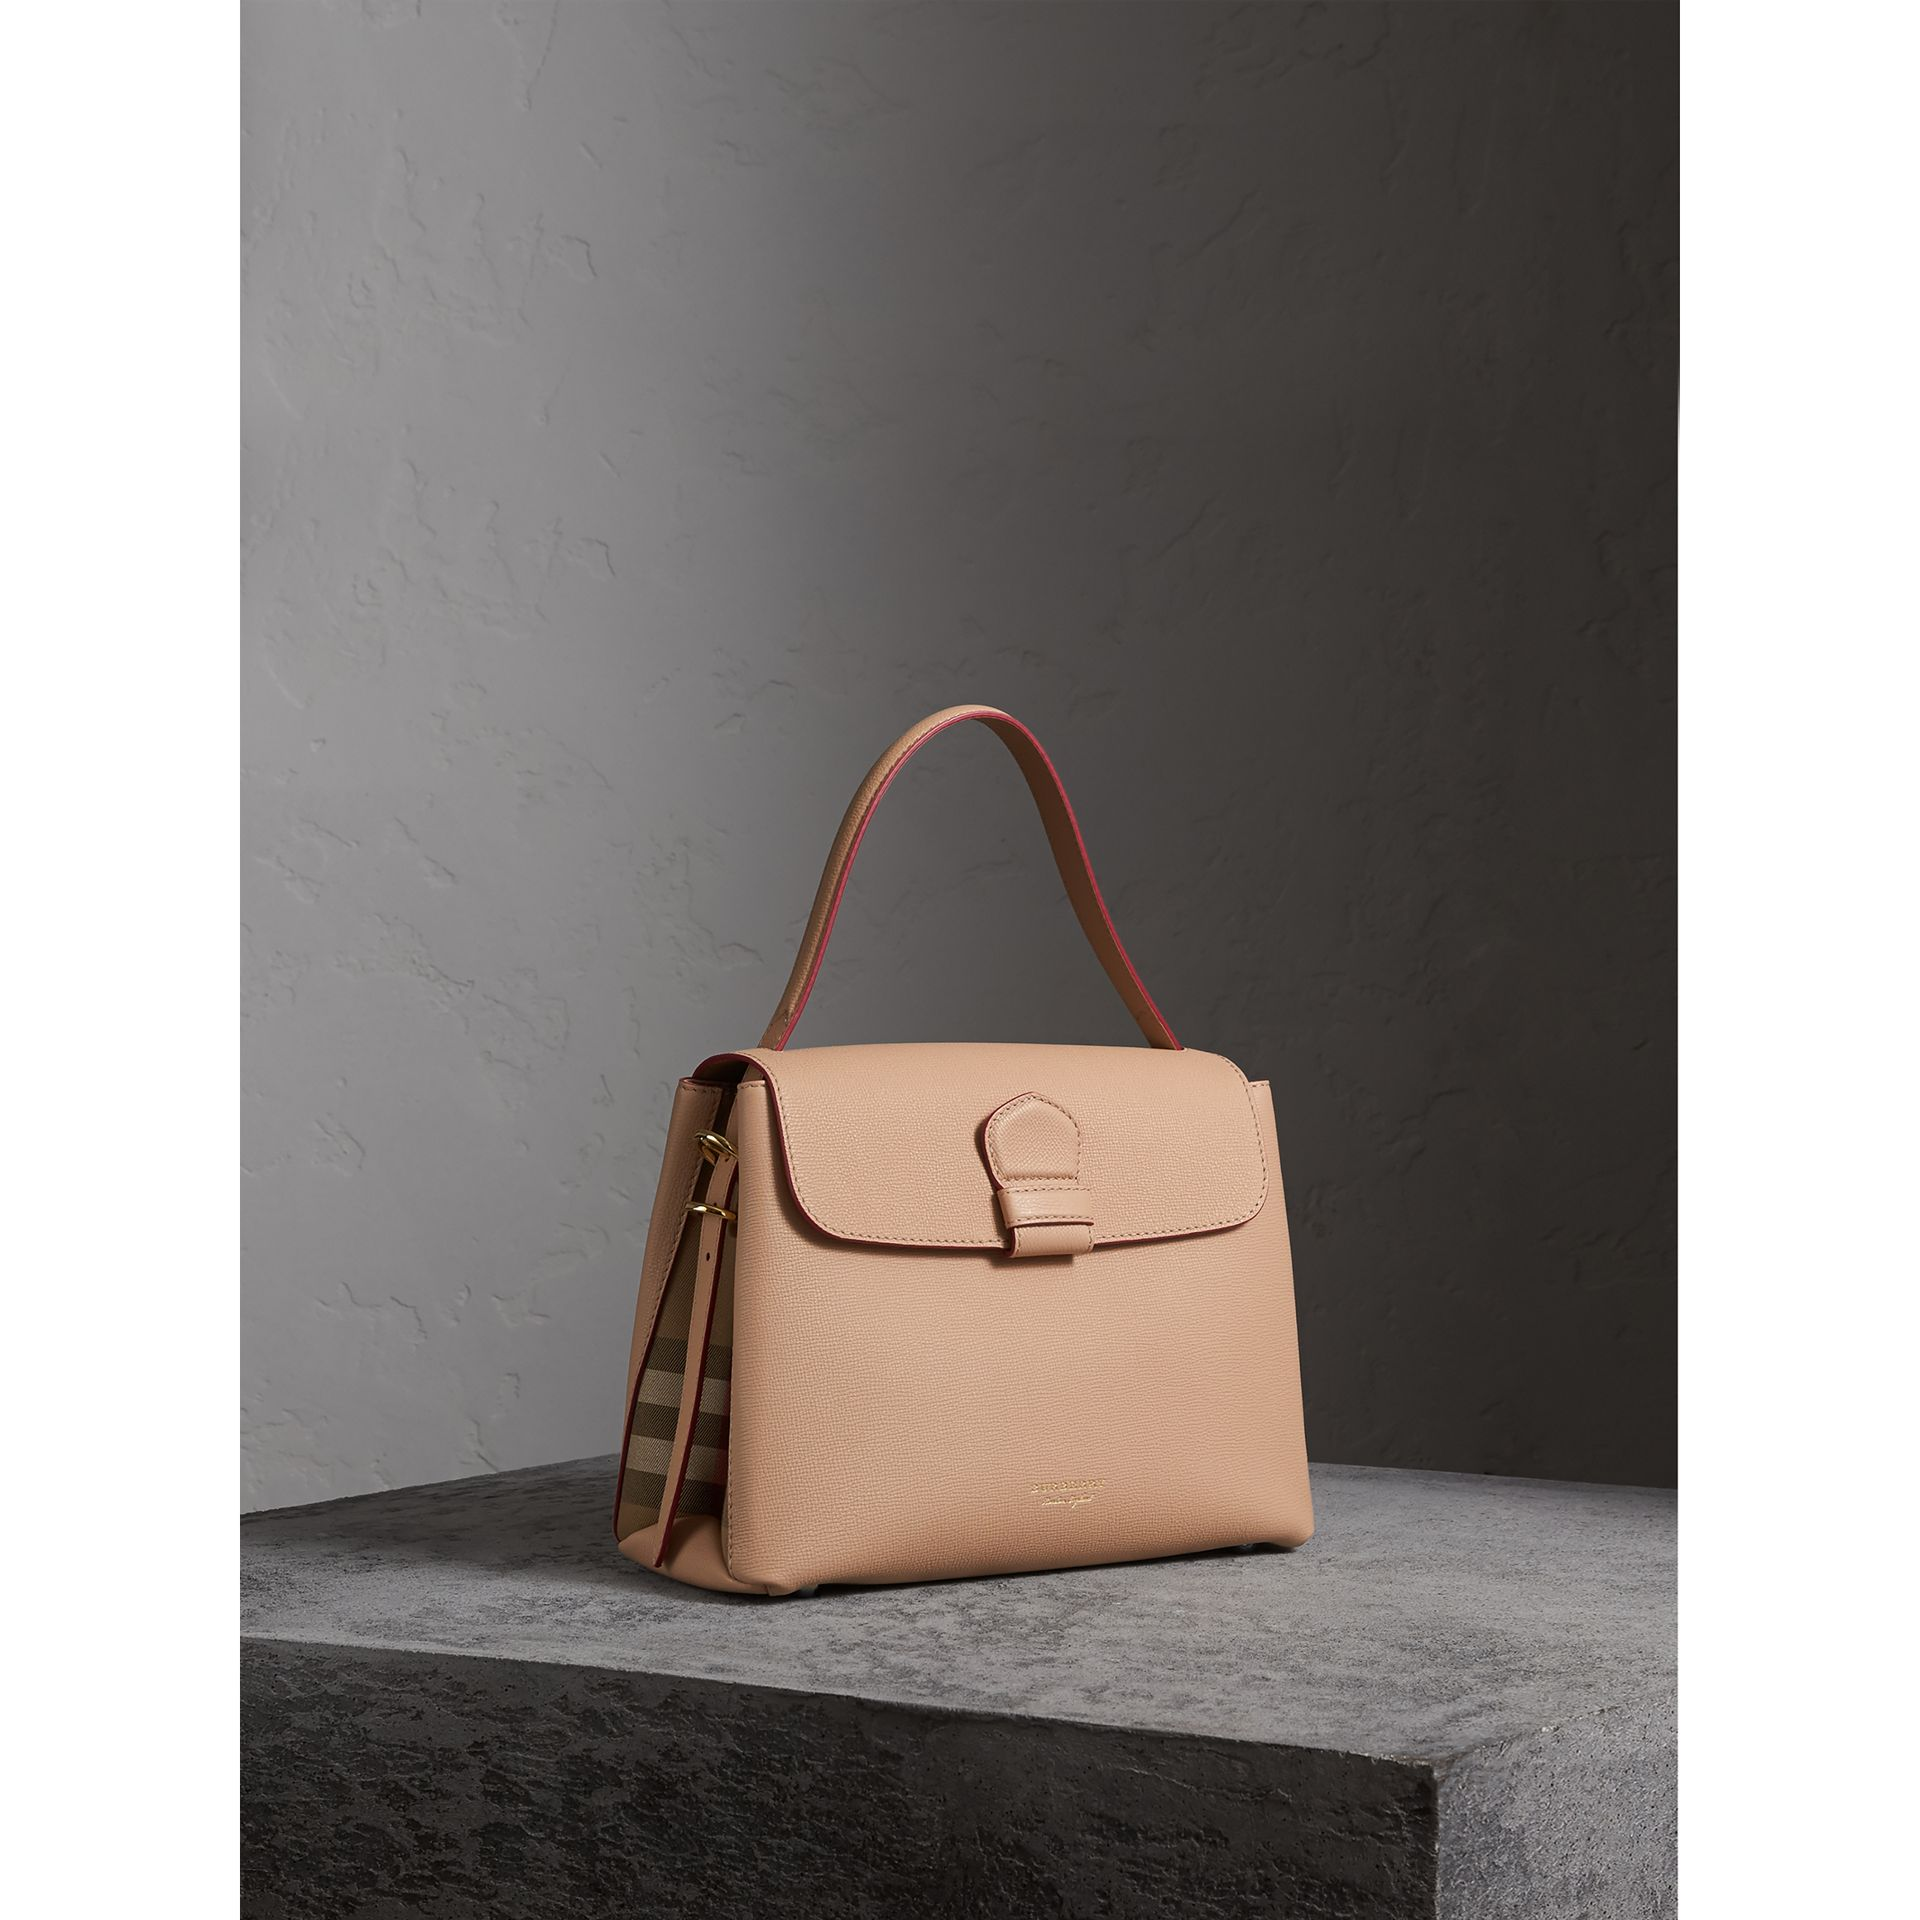 Medium Grainy Leather and House Check Tote Bag in Pale Apricot - Women | Burberry - gallery image 1